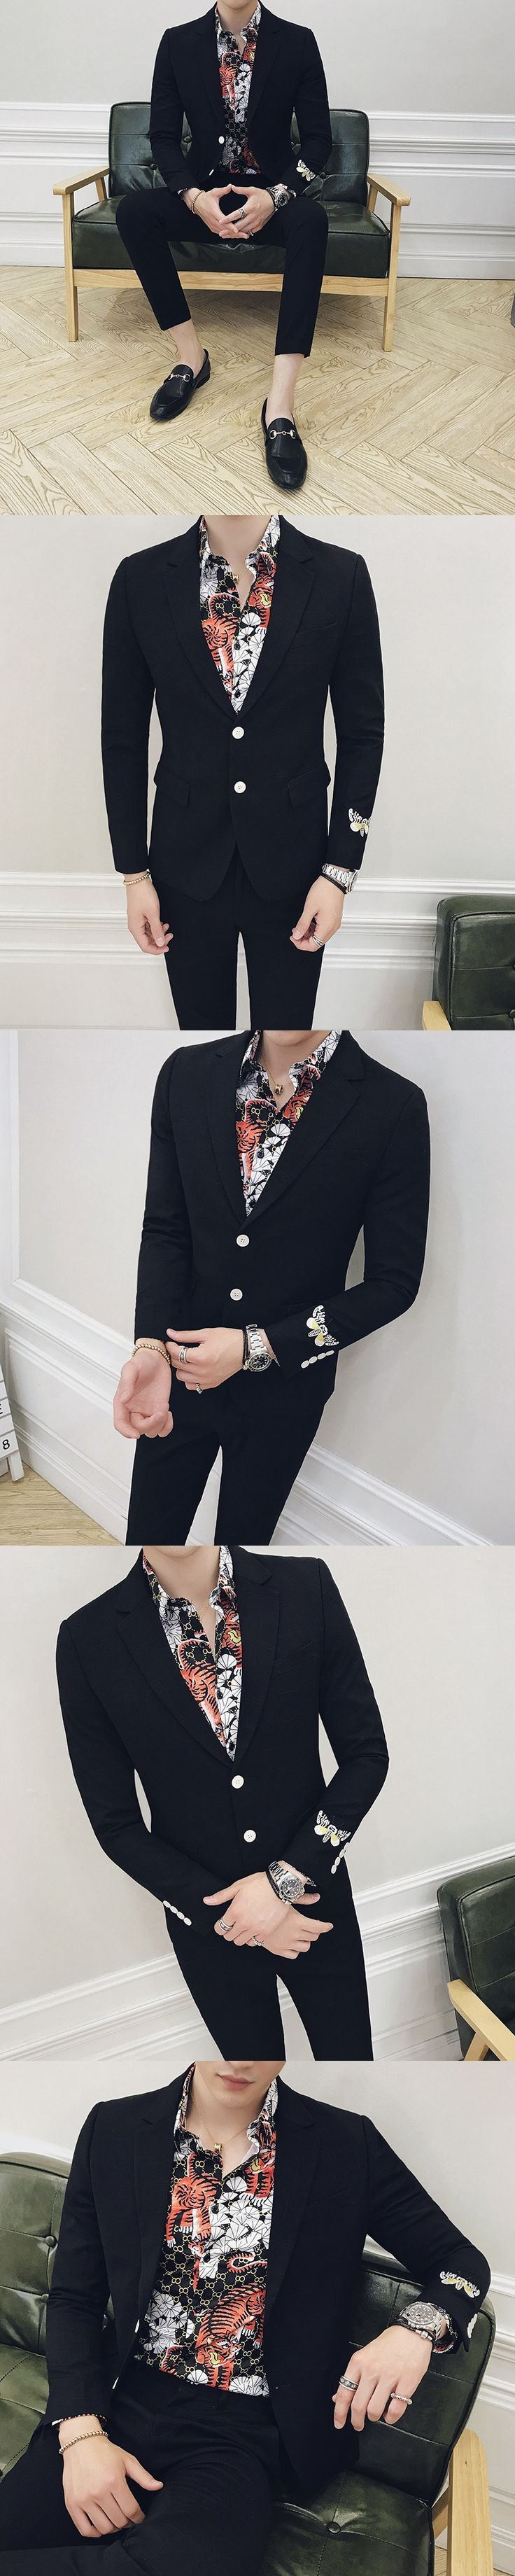 2017 Mens Suits Slim Fit Black Blazer Mens Smoking Mariage Homme Mens Party Suits Prom Business Blazers Social  Club Outfits